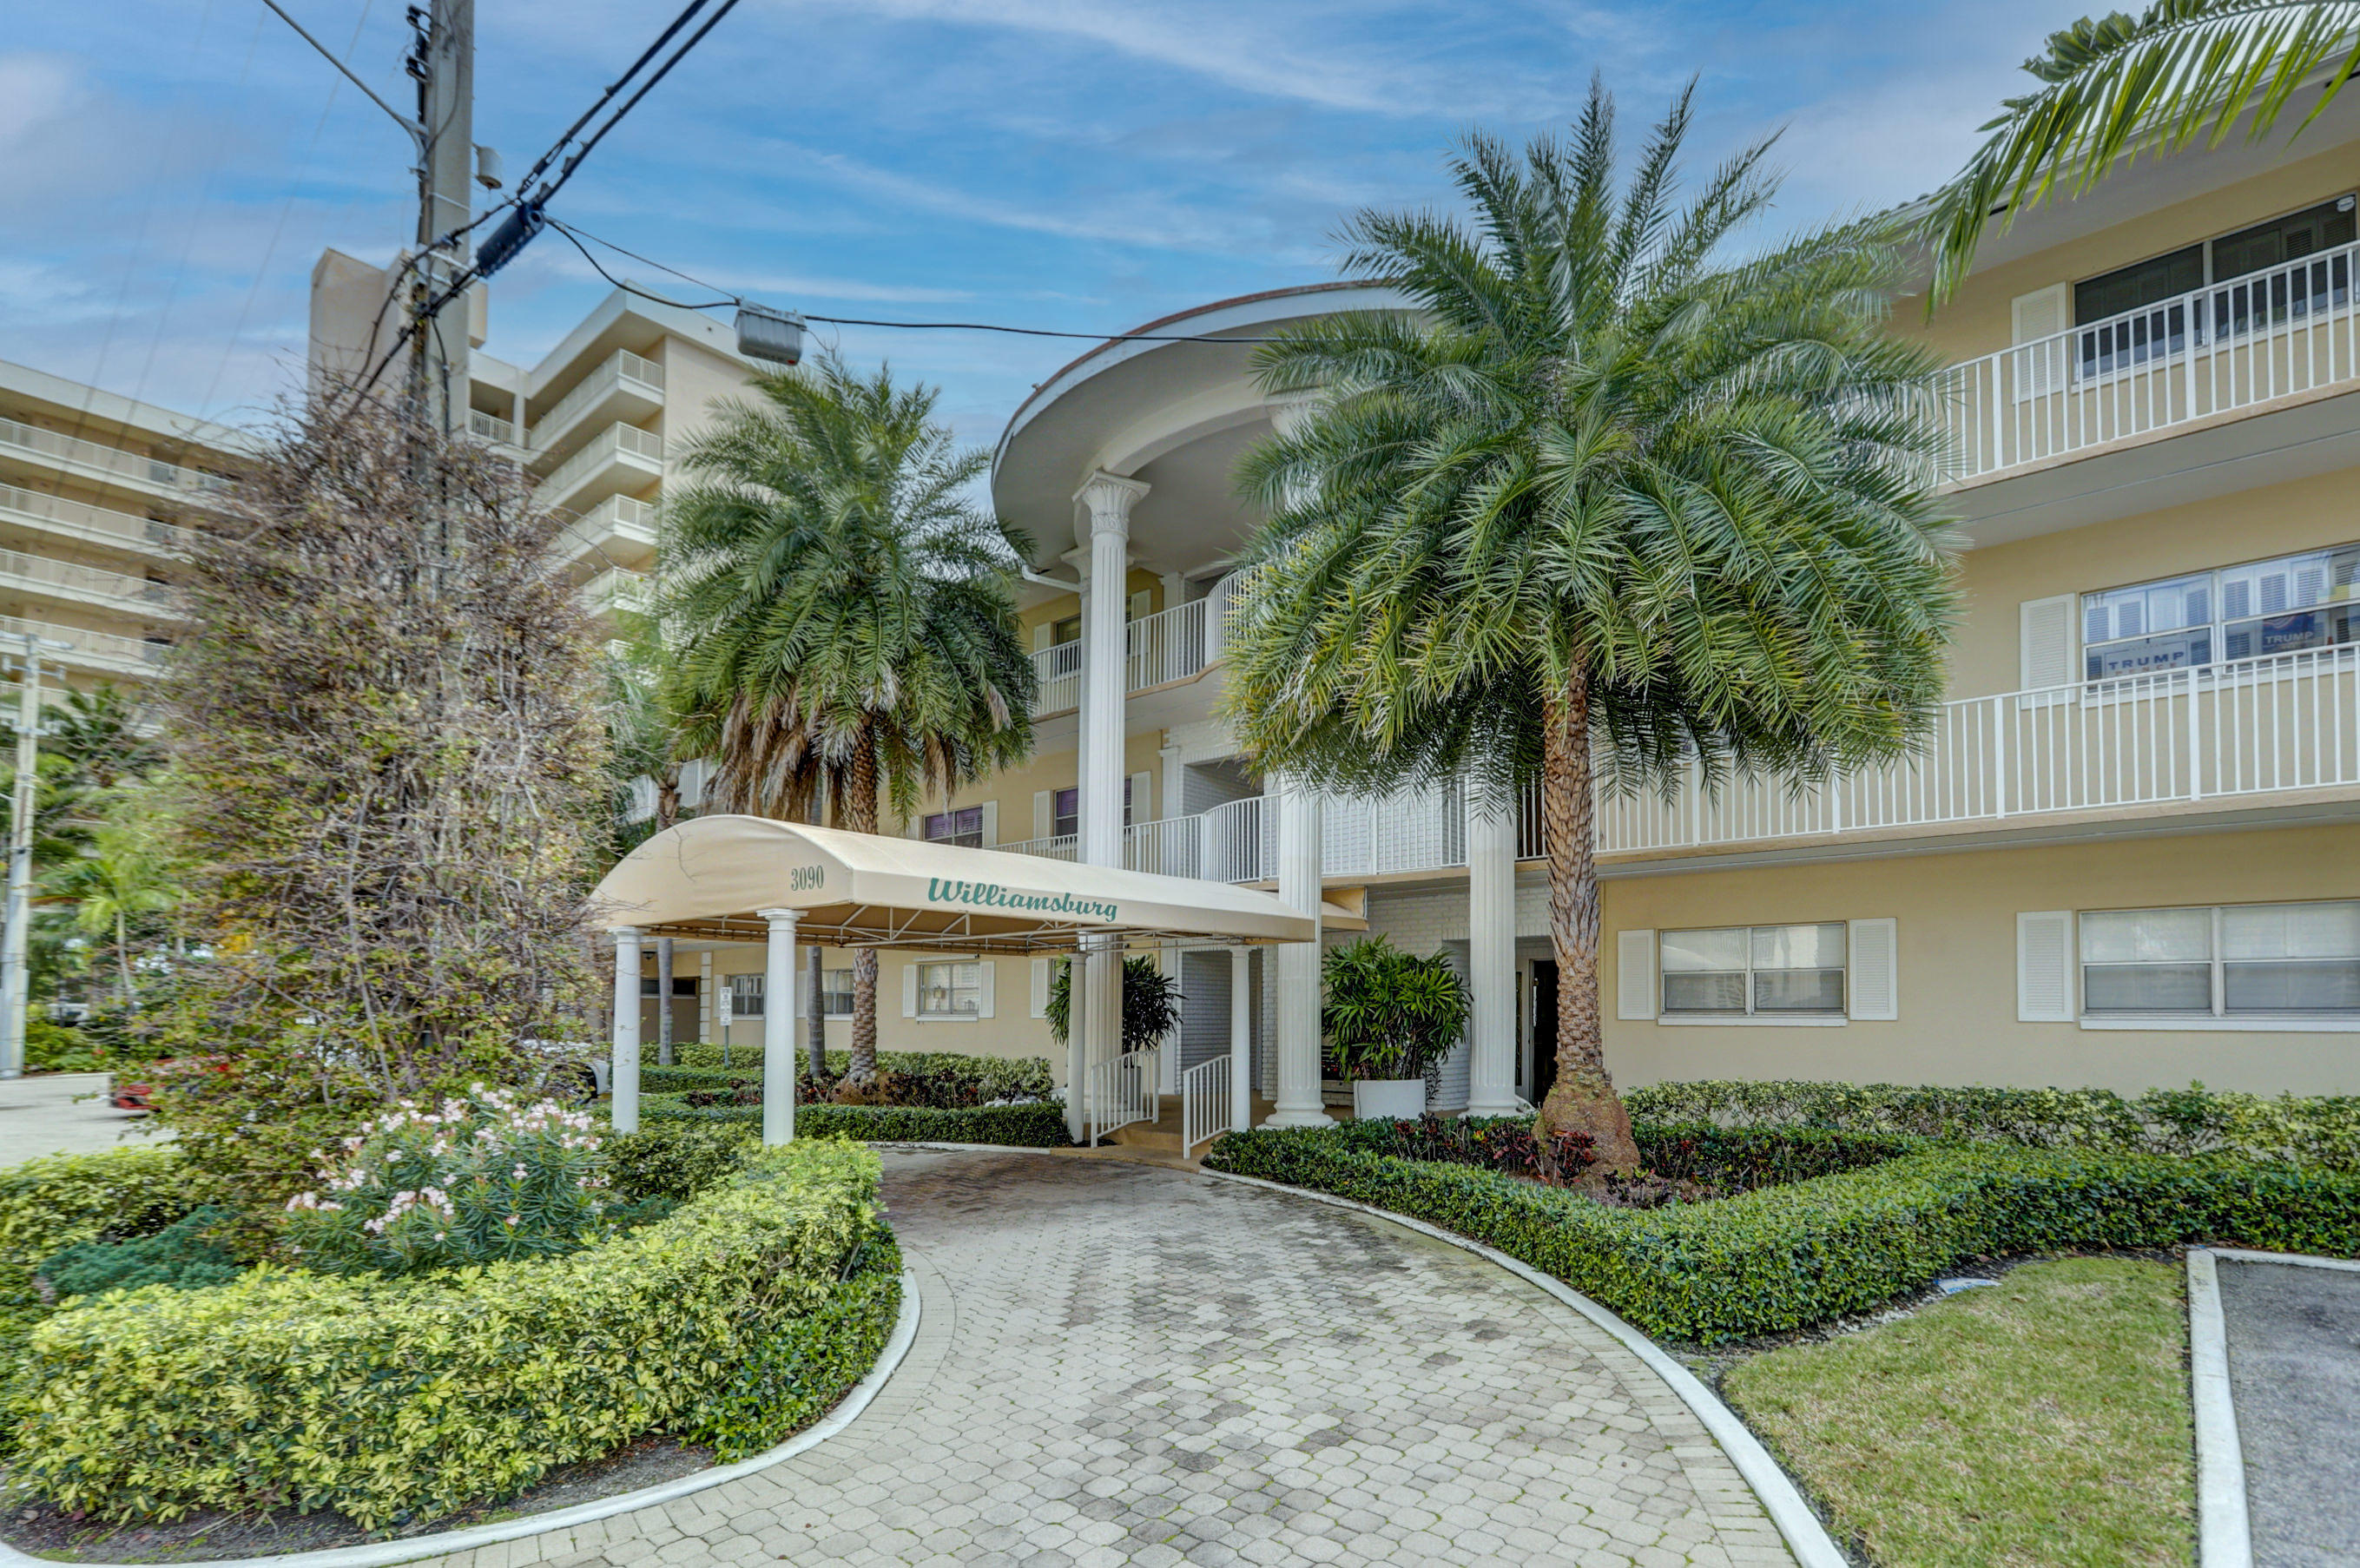 Home for sale in Williamsburg Condo Fort Lauderdale Florida